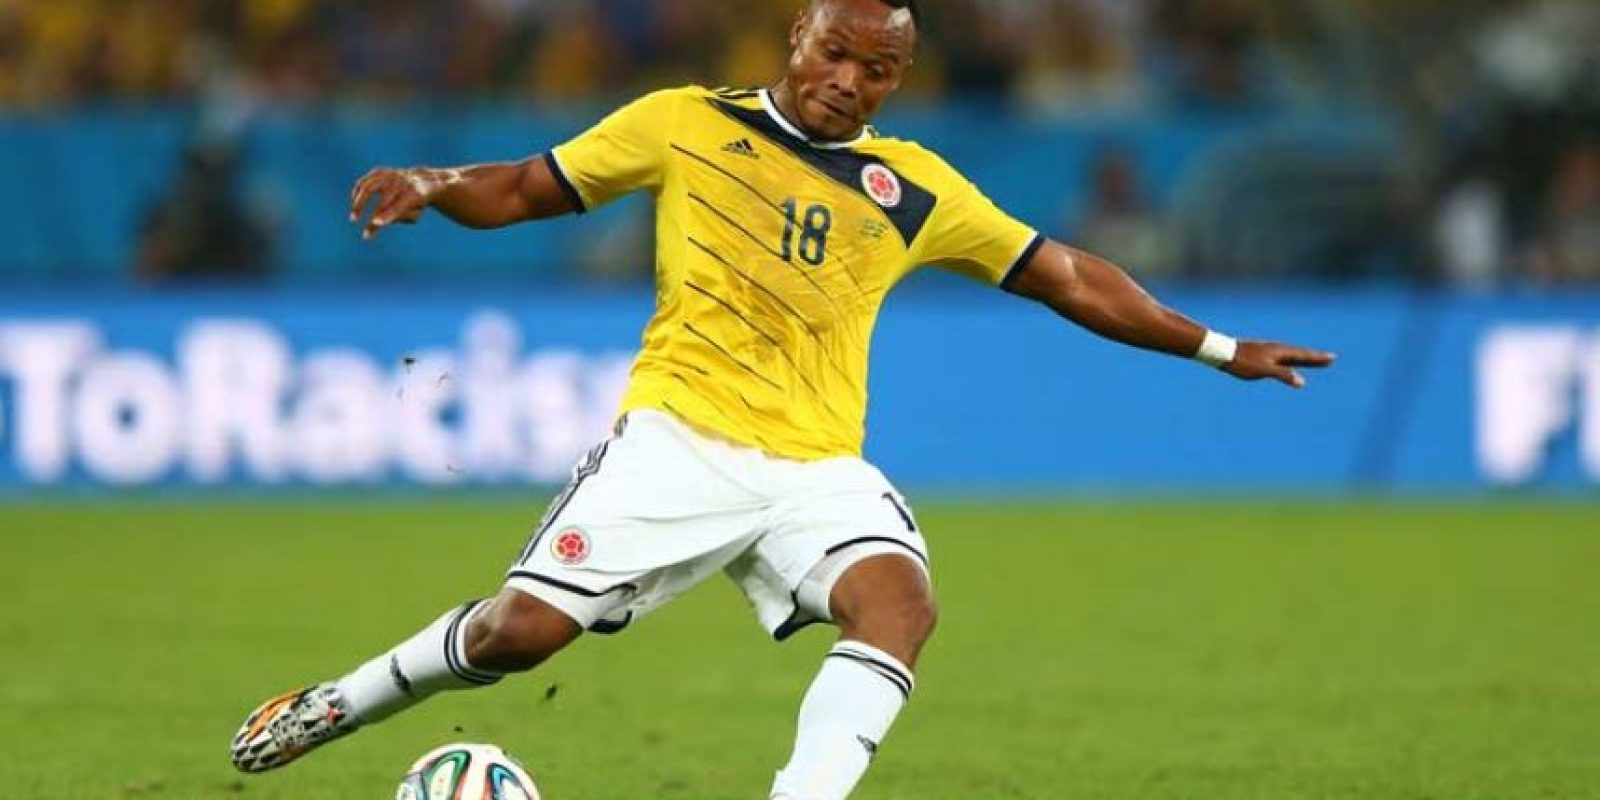 Colombia: Camilo Zúñiga Foto: Getty Images